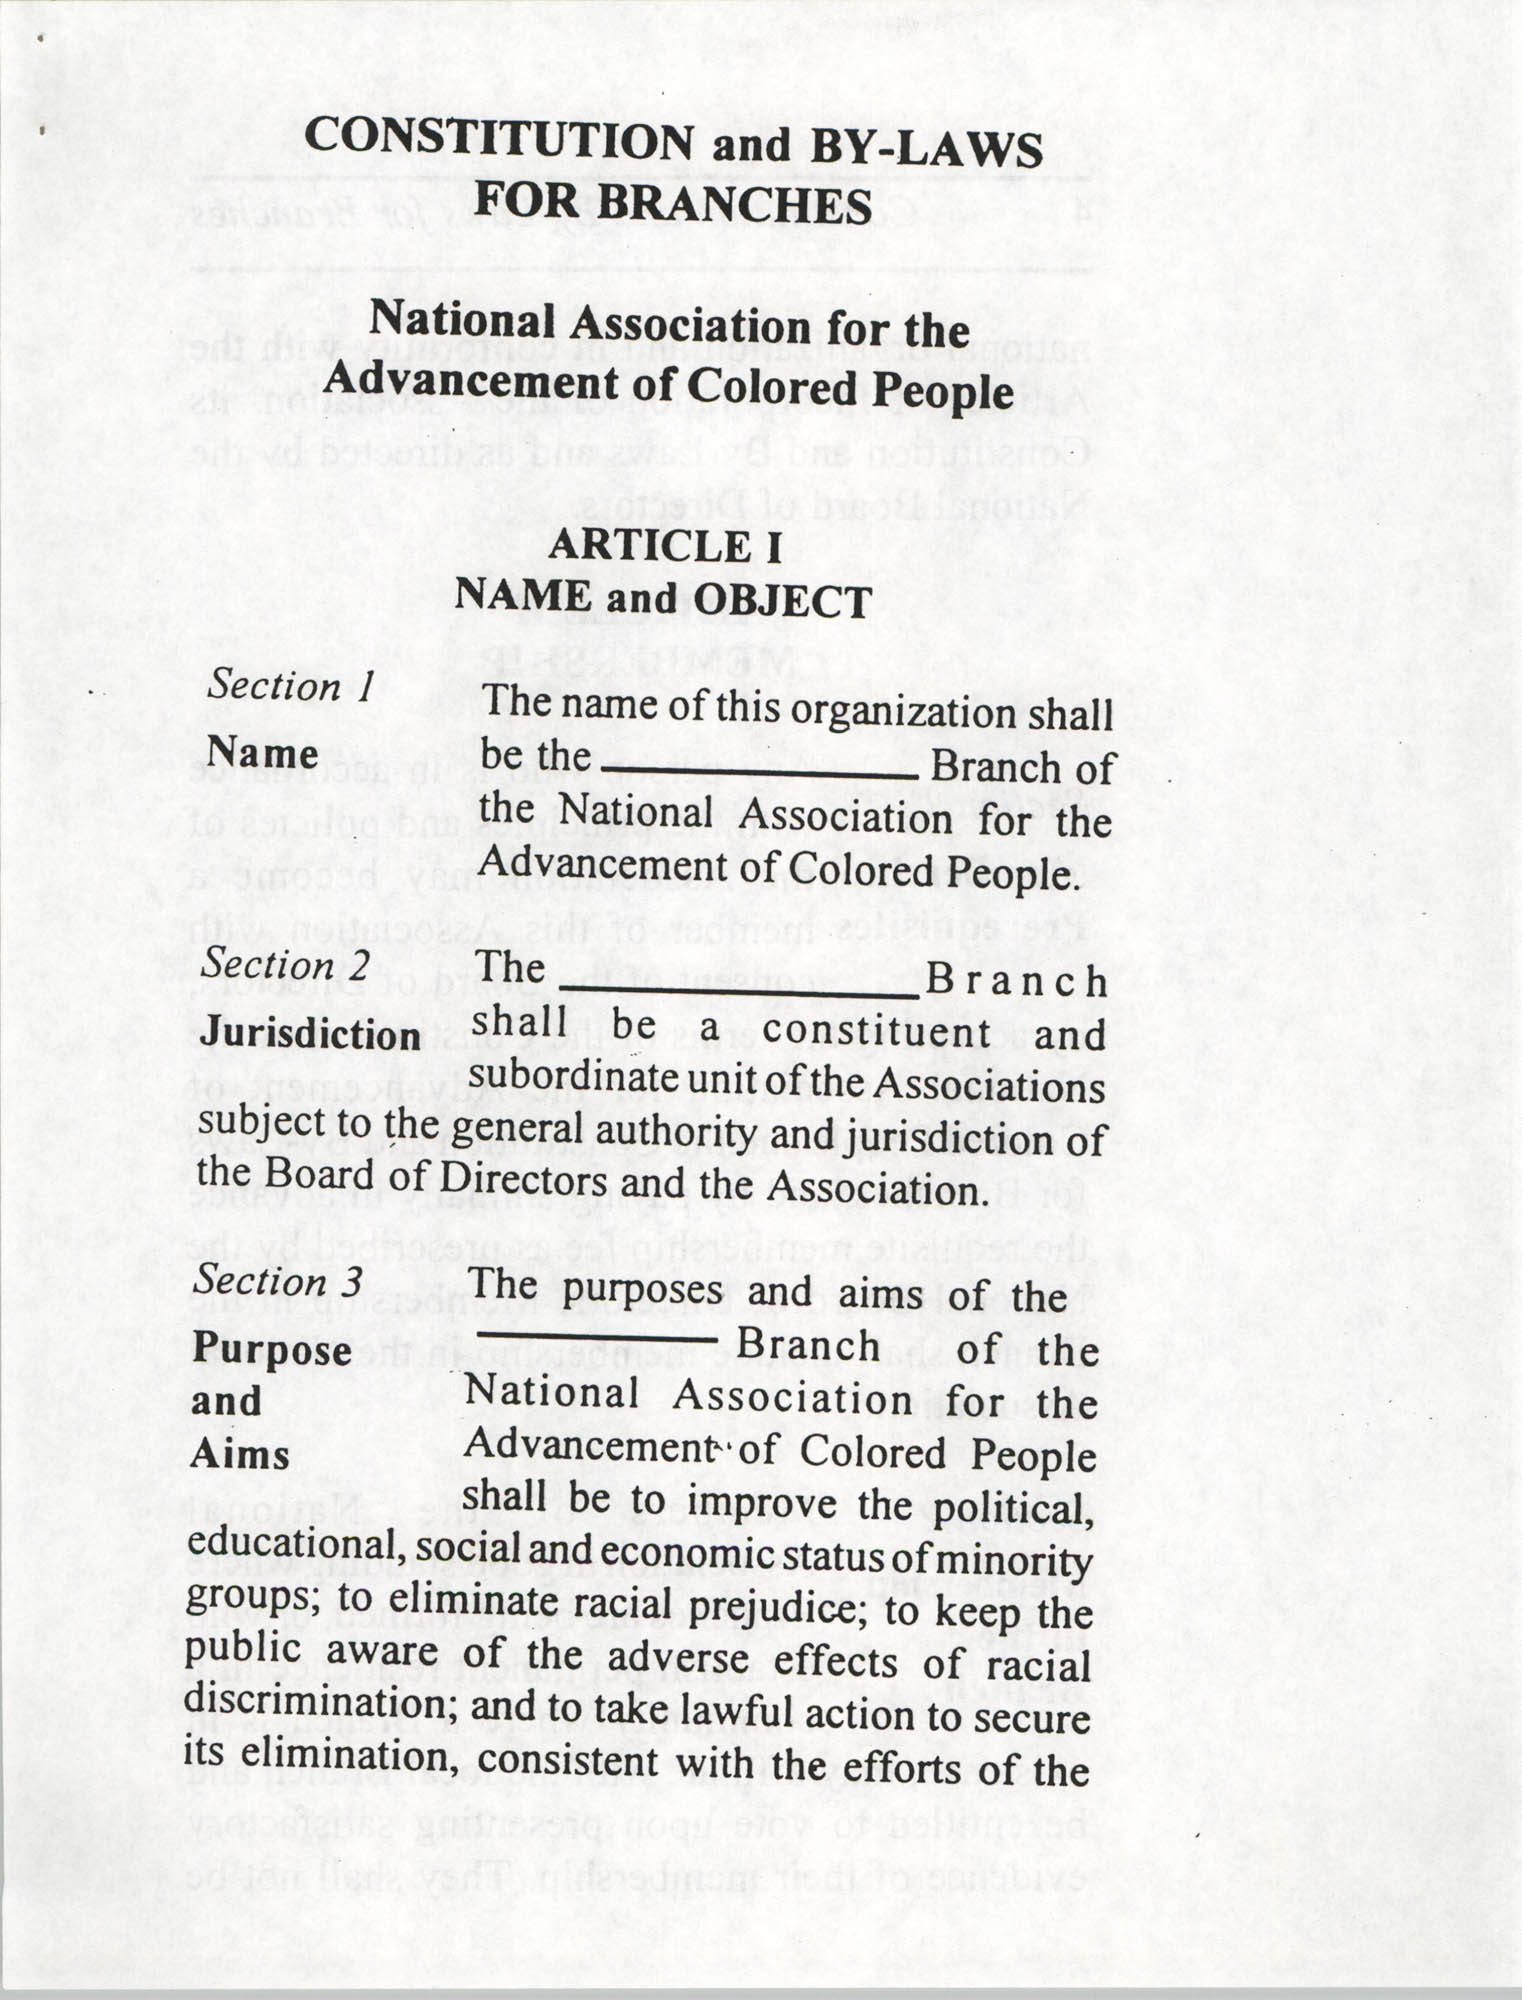 Constitution and By-Laws for Branches of the NAACP, July 1994, Page 3